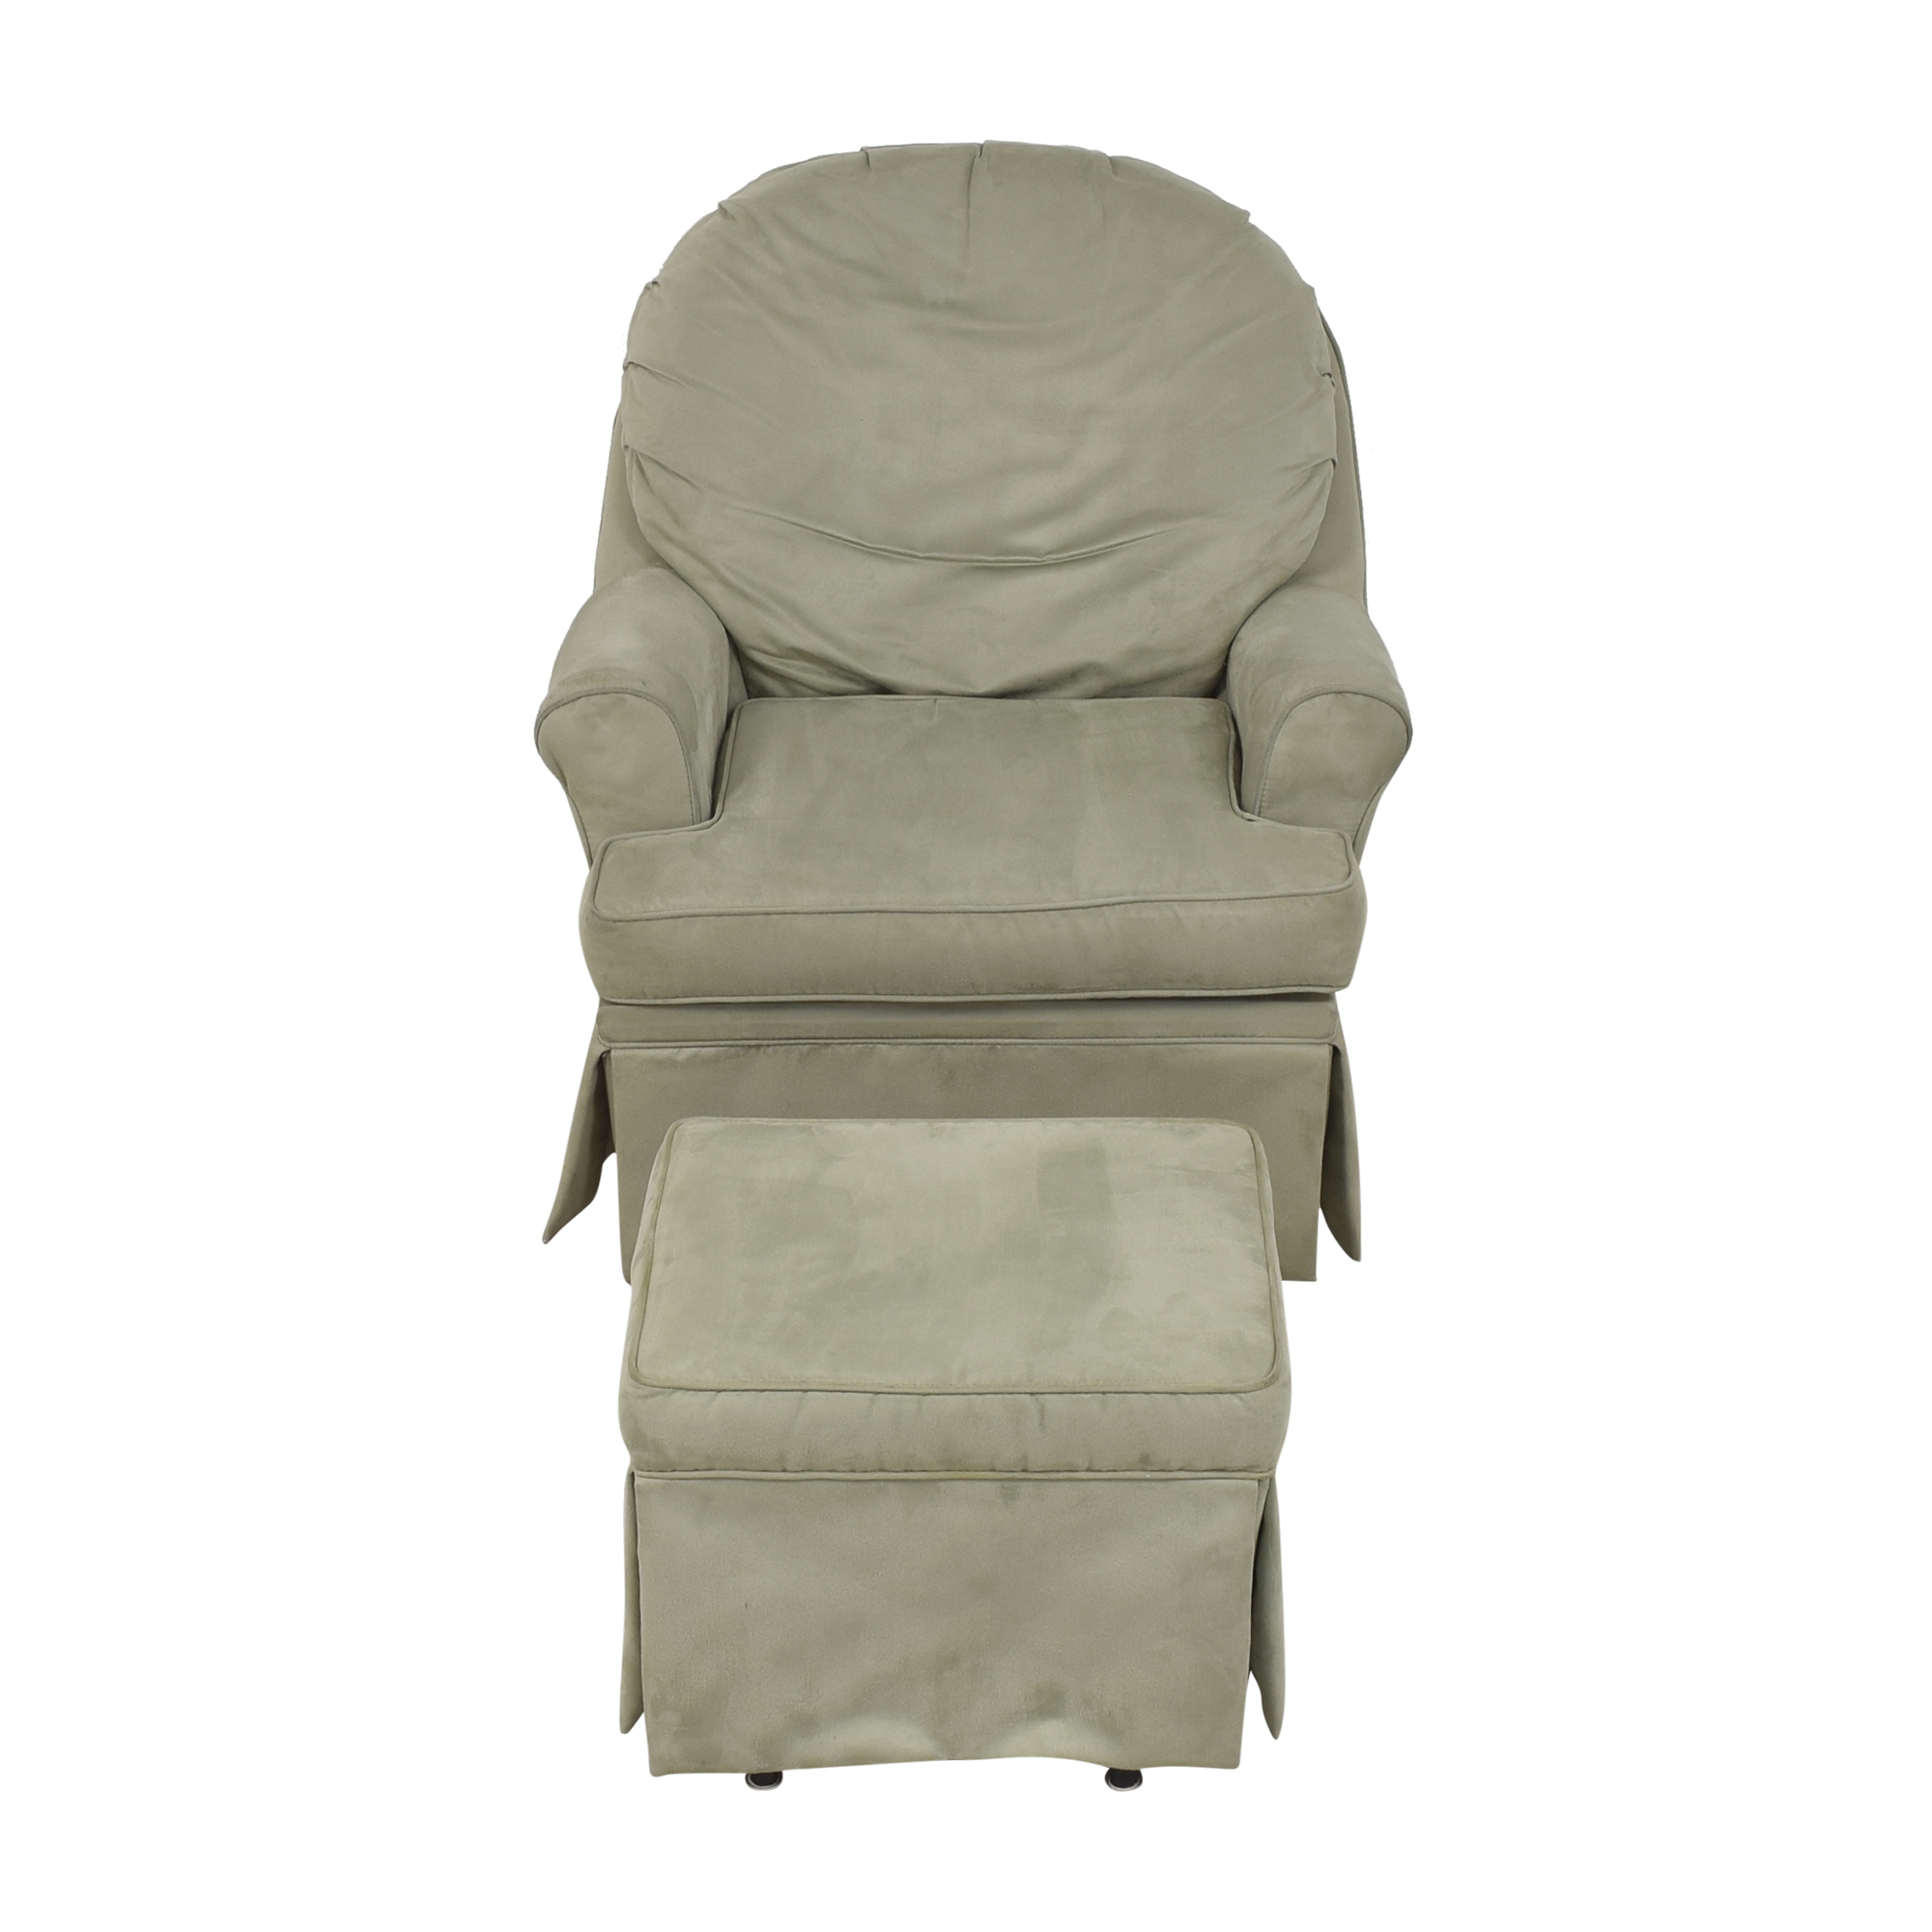 buy Dutailier Dutailier Upholstered Glider with Ottoman online